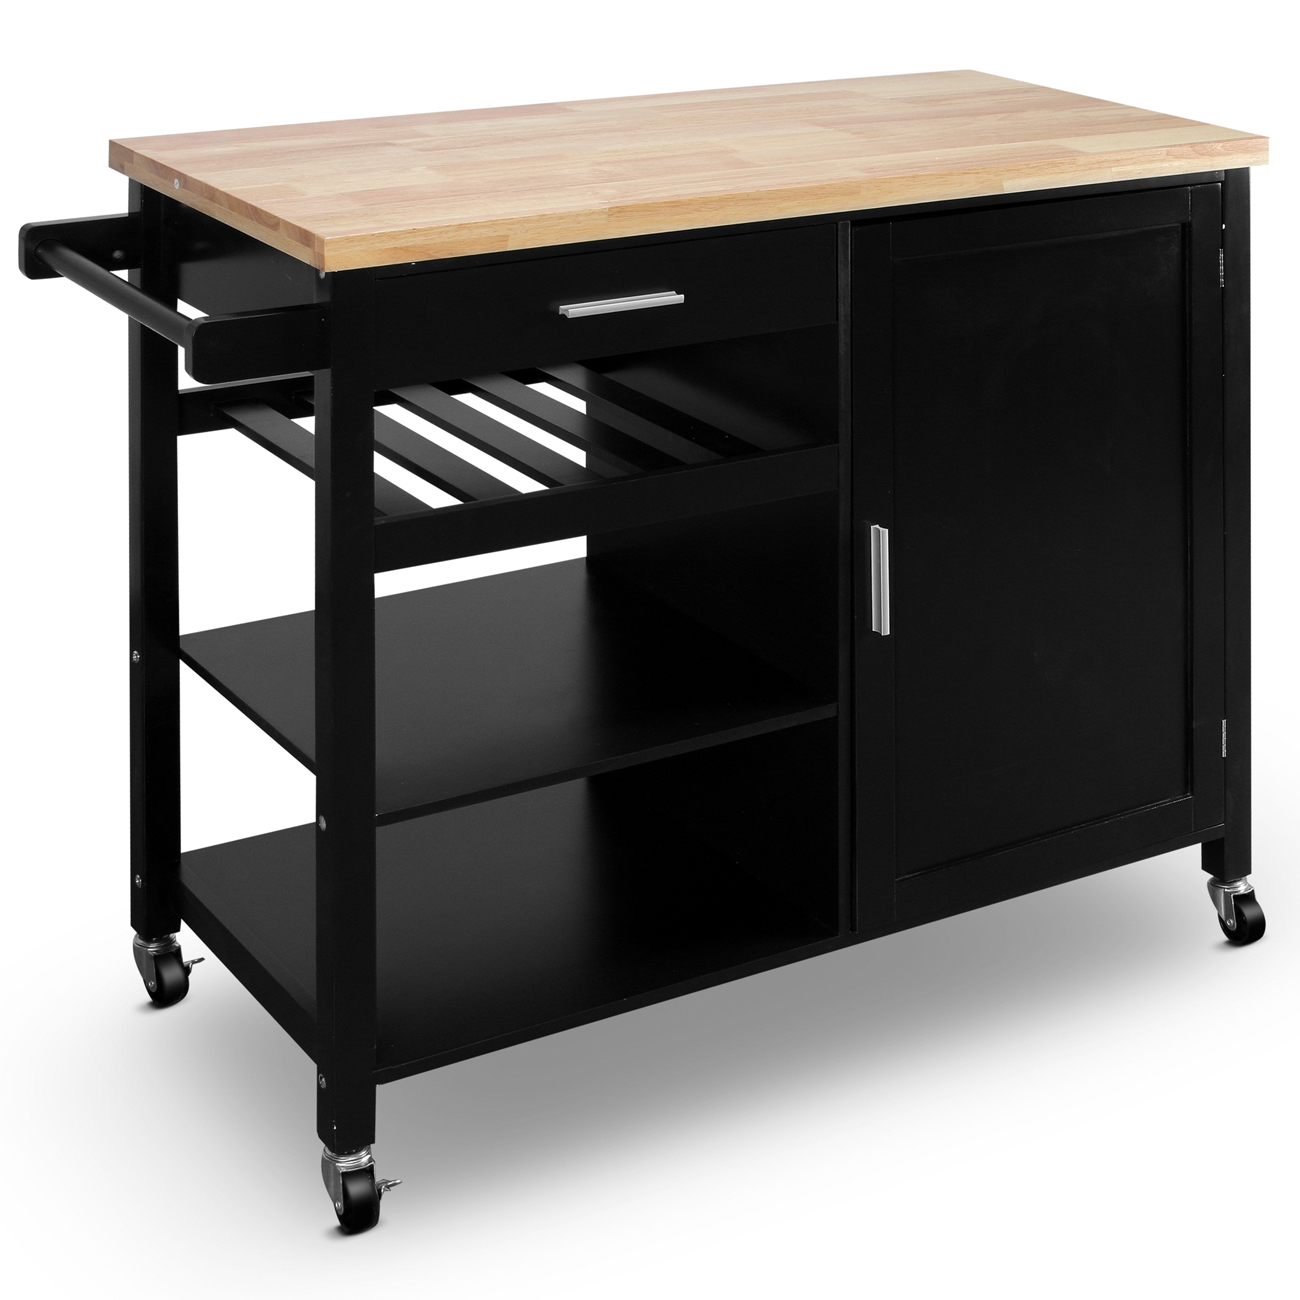 Charmant BELLEZE Wood Top Multi Storage Cabinet Rolling Kitchen Island Table Cart  With Wheels   Black